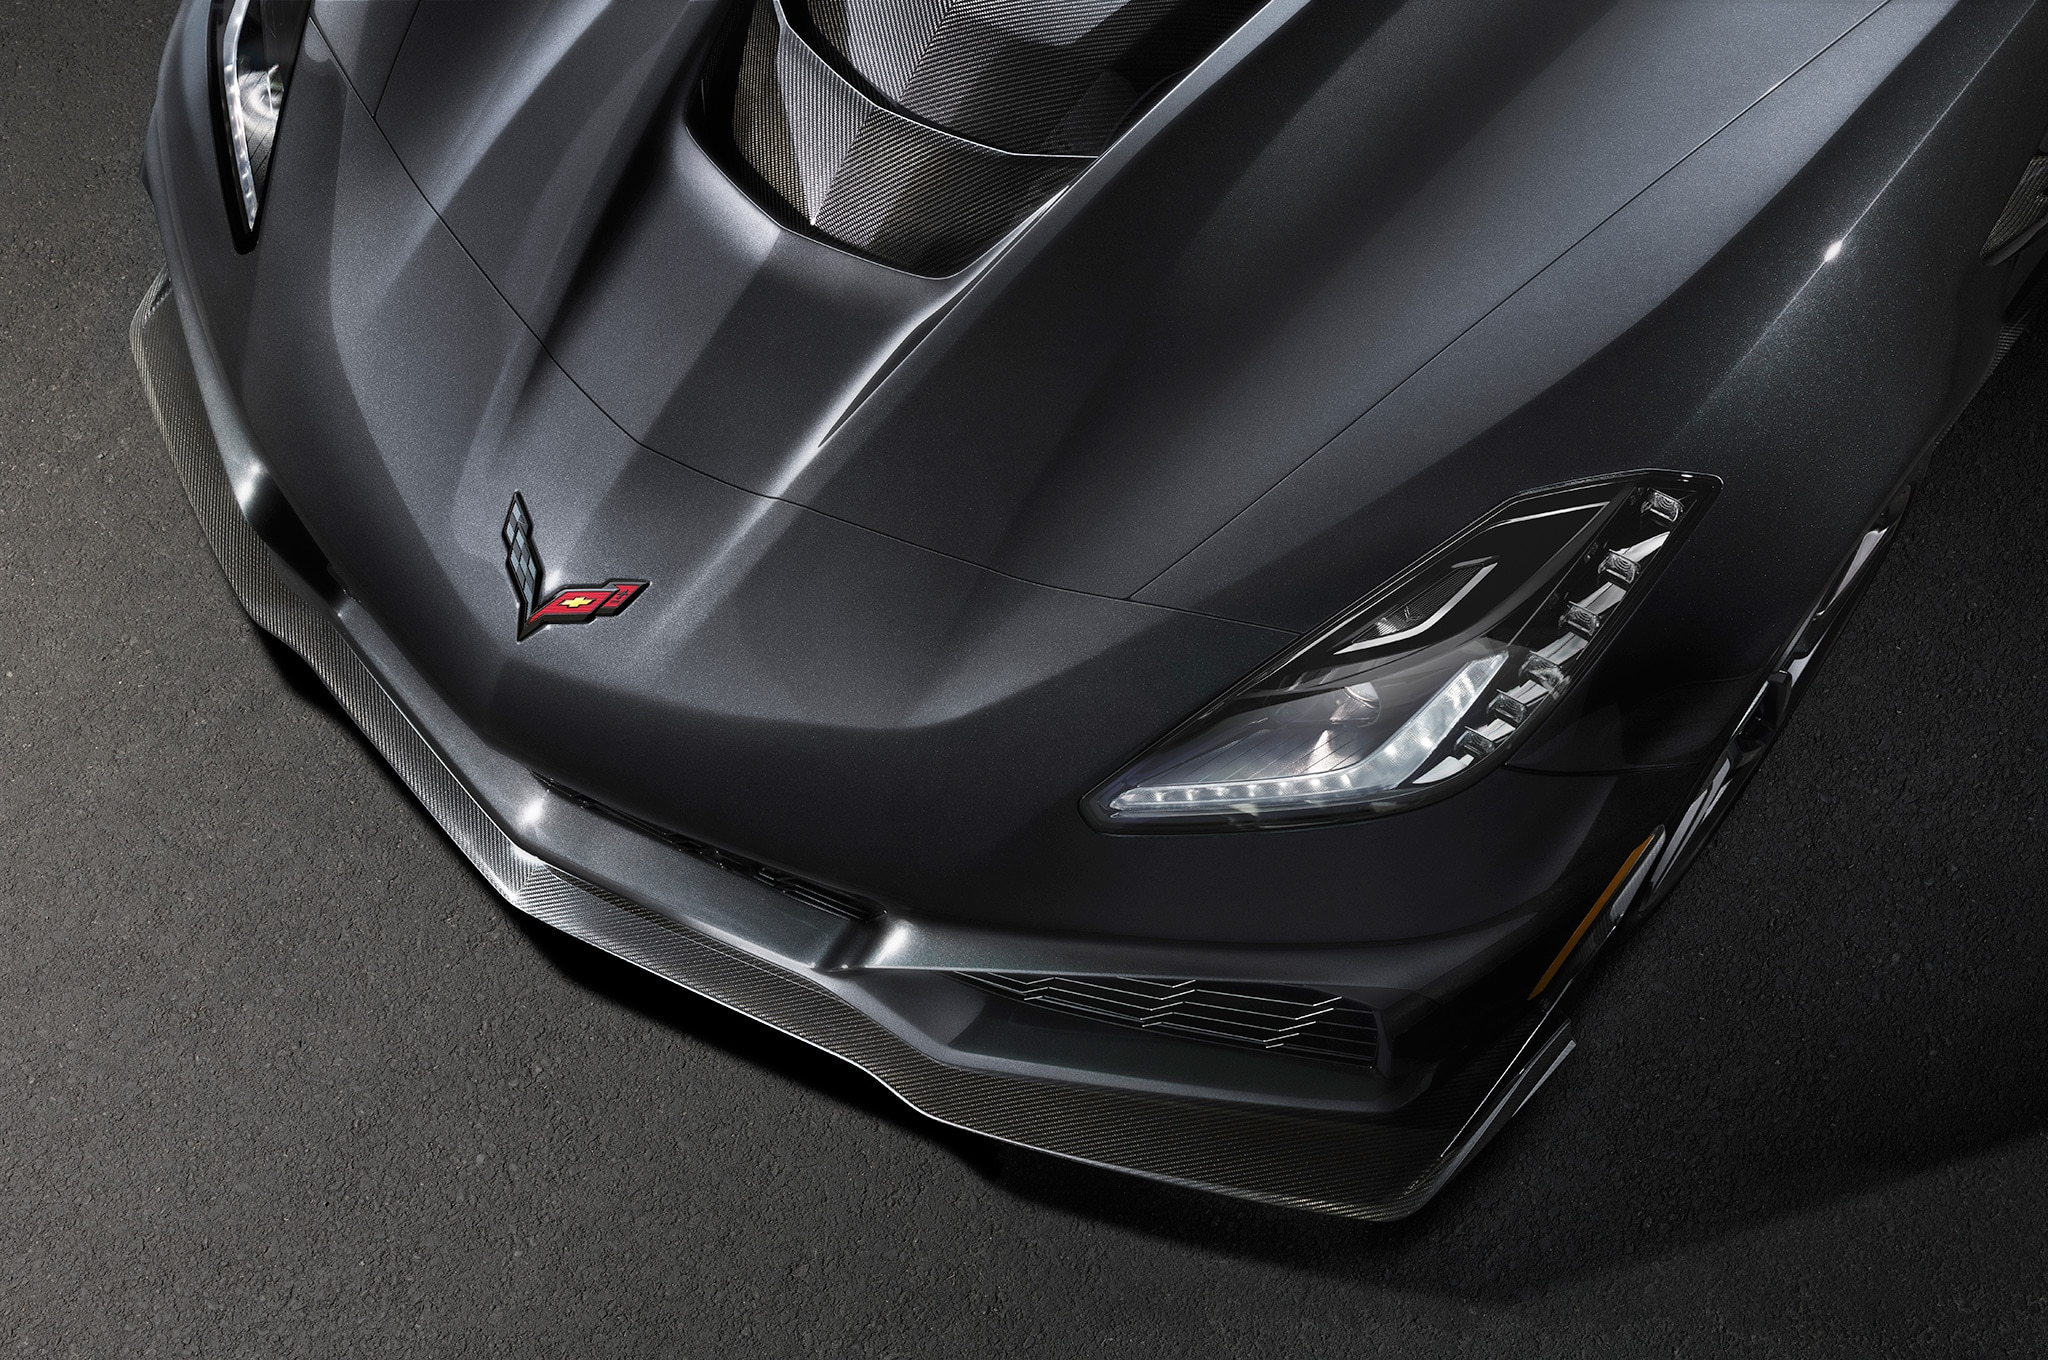 Chevrolet Corvette ZR1 debuts with 755hp LT5 engine